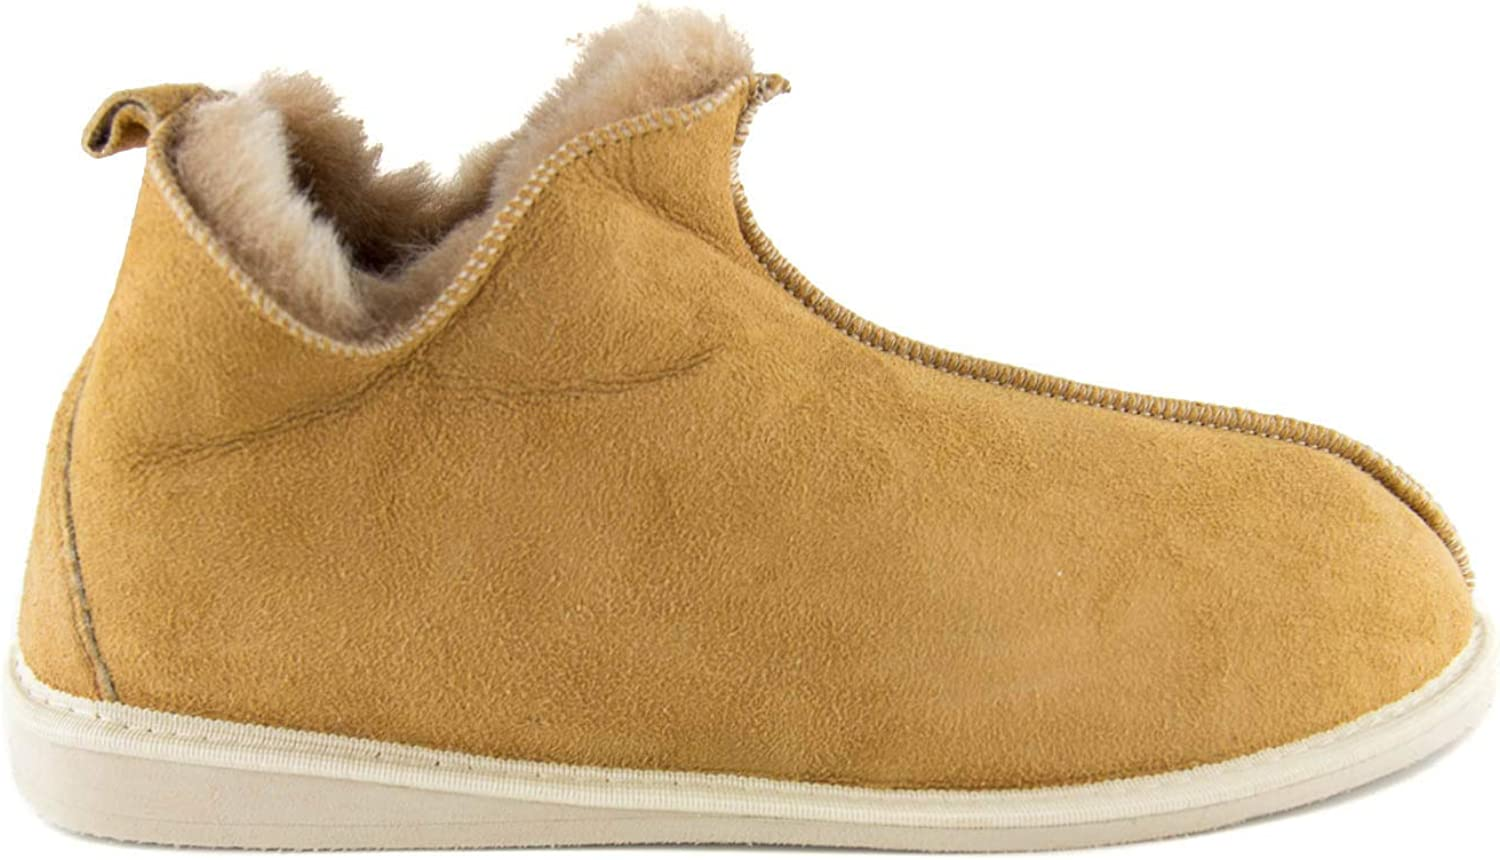 Yeti & Sons Hand Crafted Luxury Men's 100% Sheepskin Lined Ankle Boot Hardsole Slippers (7 UK, Chestnut)